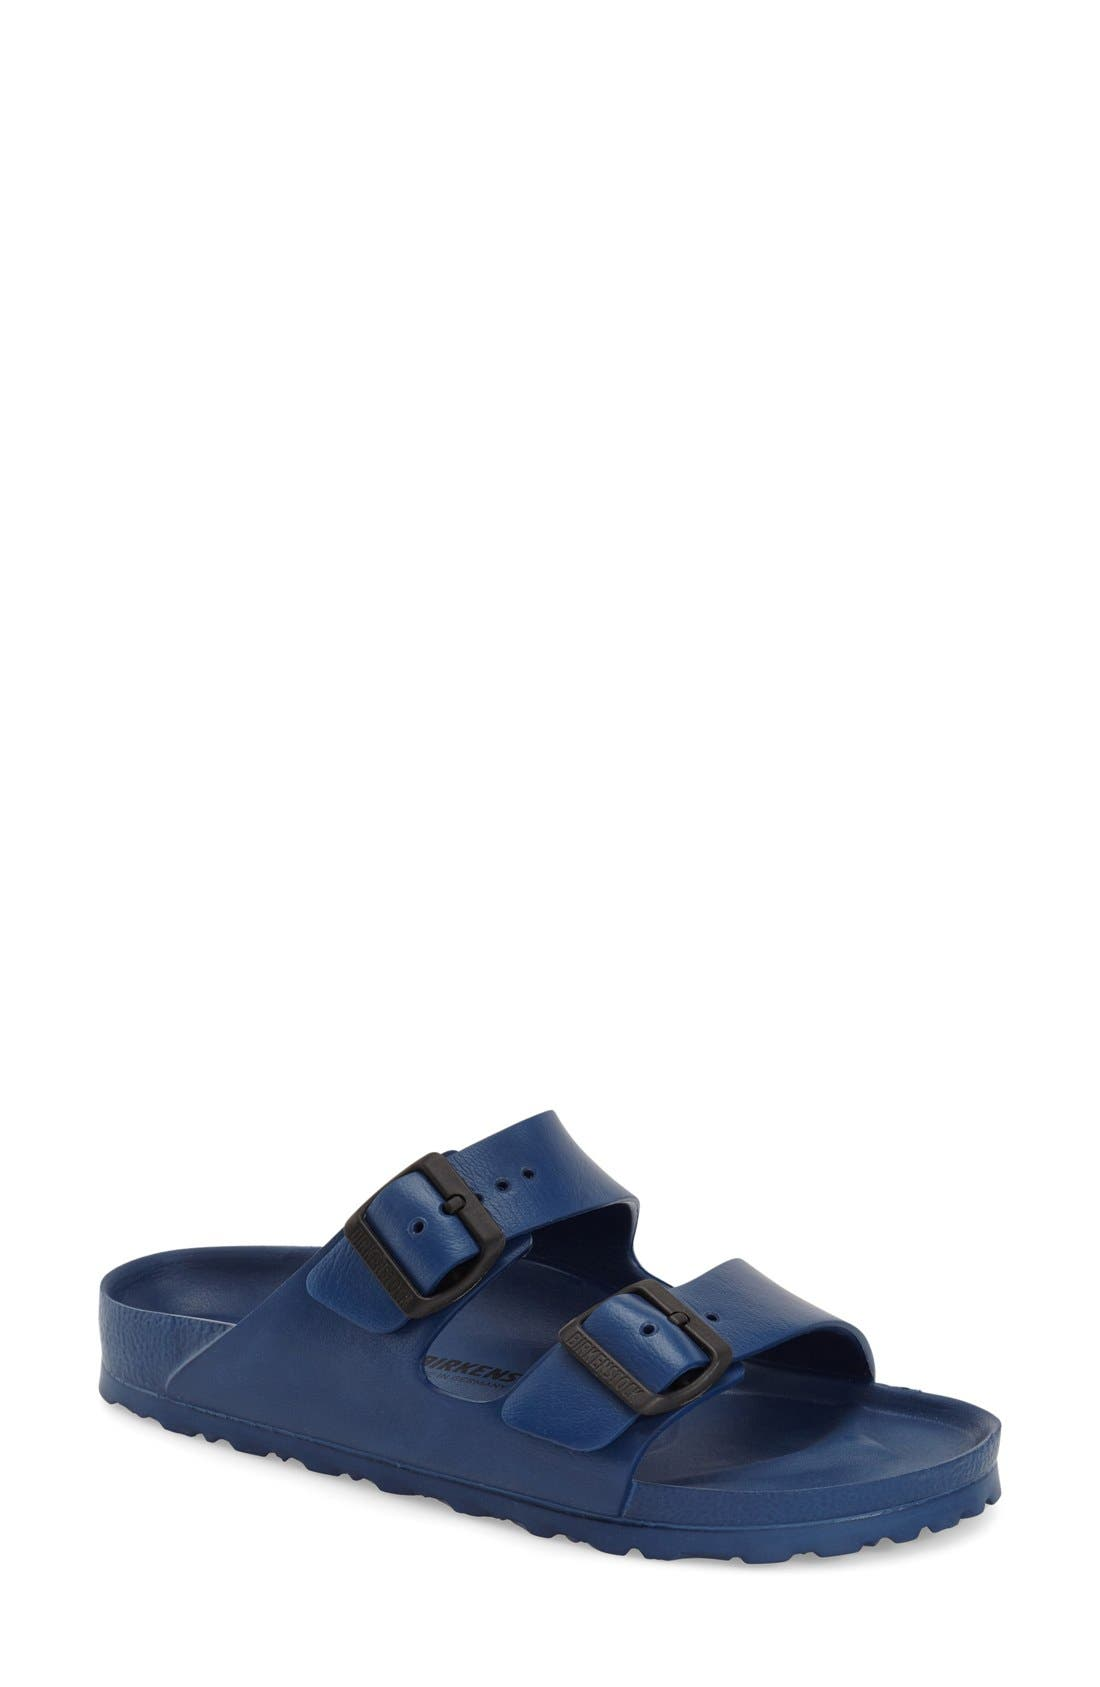 Alternate Image 1 Selected - Birkenstock Essentials - Arizona Slide Sandal (Women) (Nordstrom Exclusive)